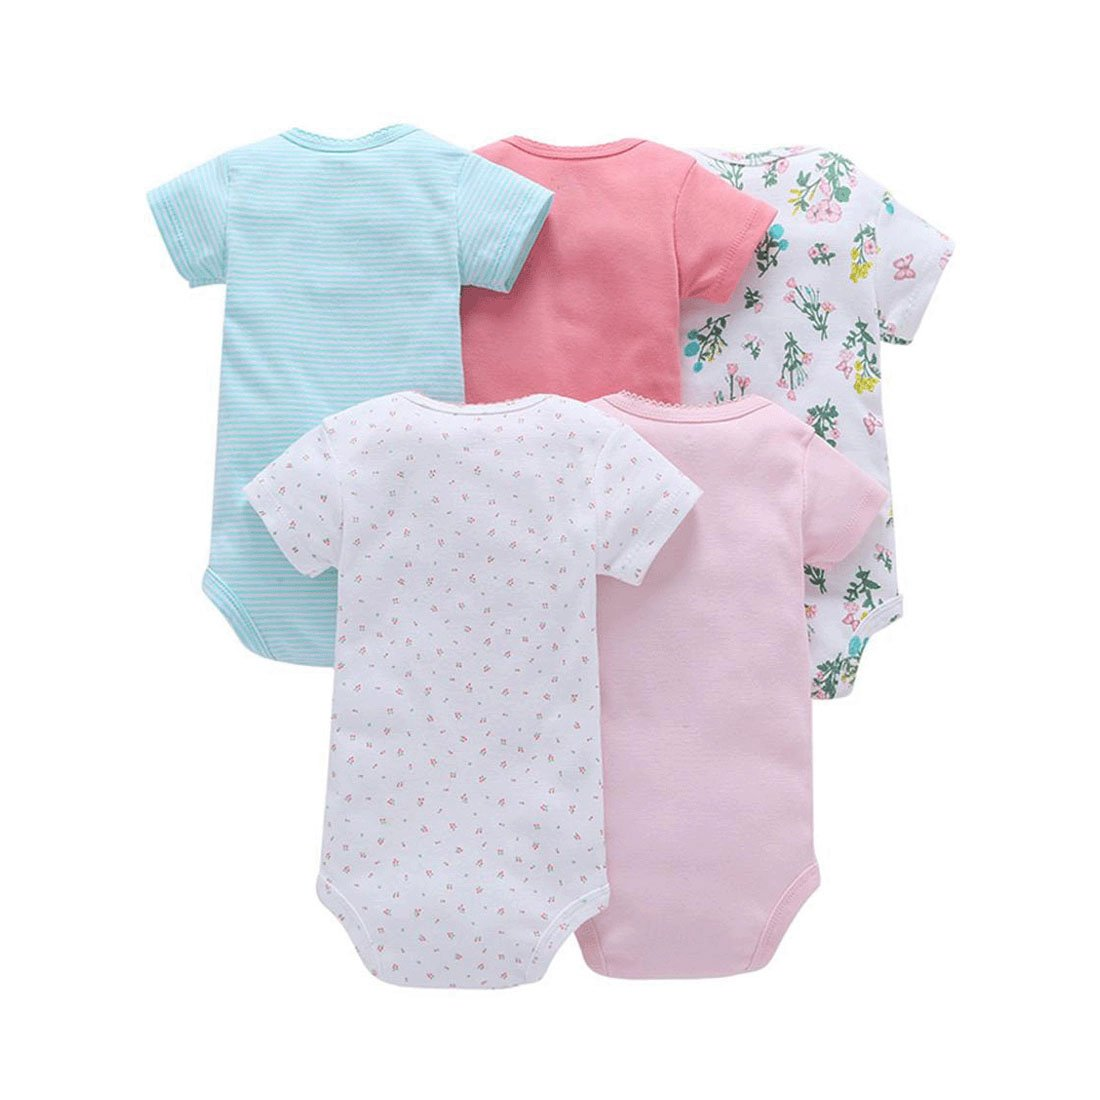 Molyveva Baby Girls Boys 5-Pack Short-Sleeve Romper Toddler Cotton Bodysuits